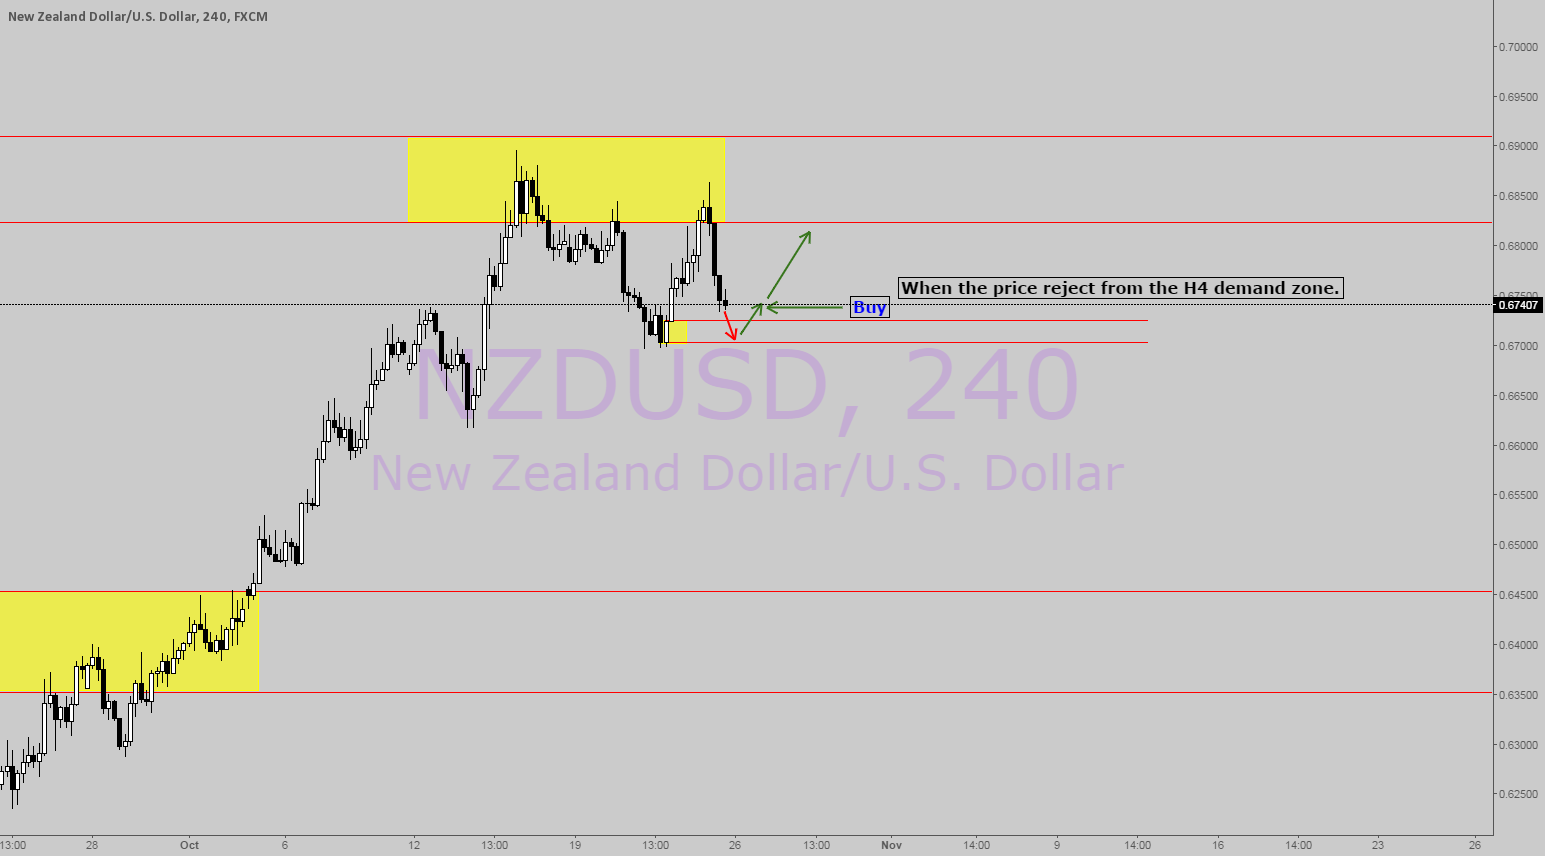 NZDUSD wait to buy